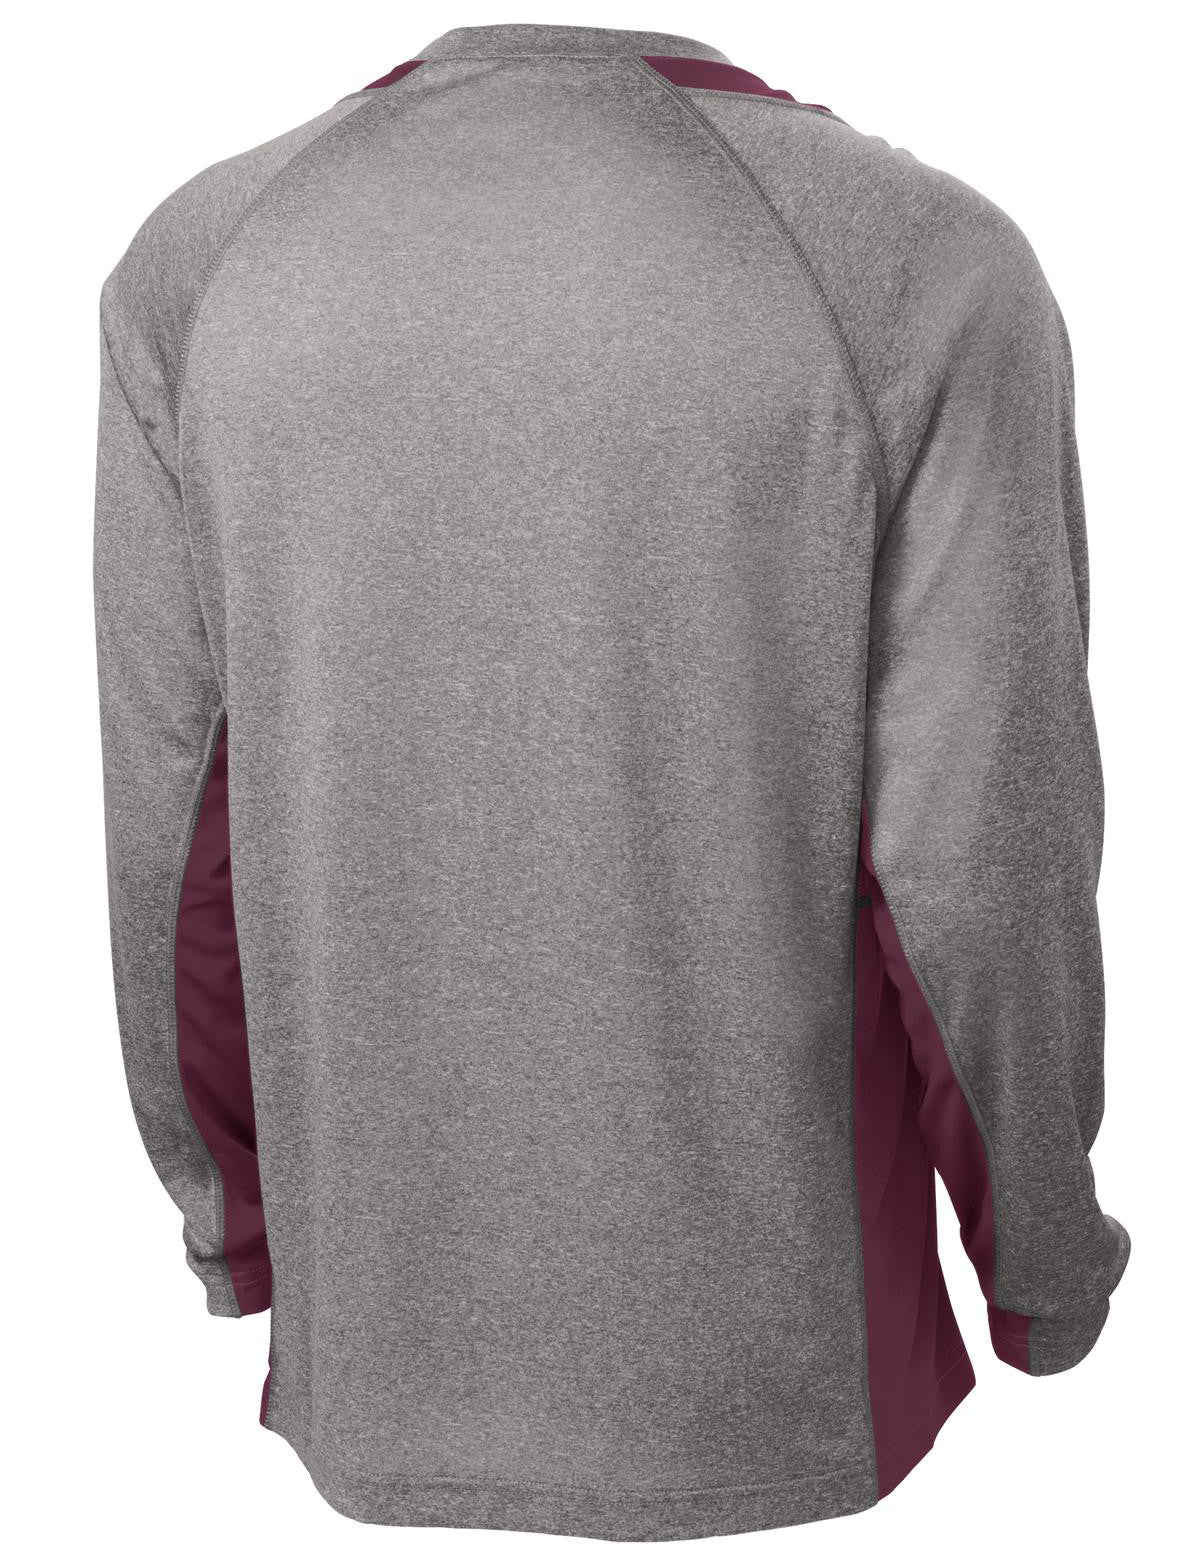 Mafoose Men's Long Sleeve Heather Colorblock Contender Tee Shirt Vintage Heather/ Maroon-Back